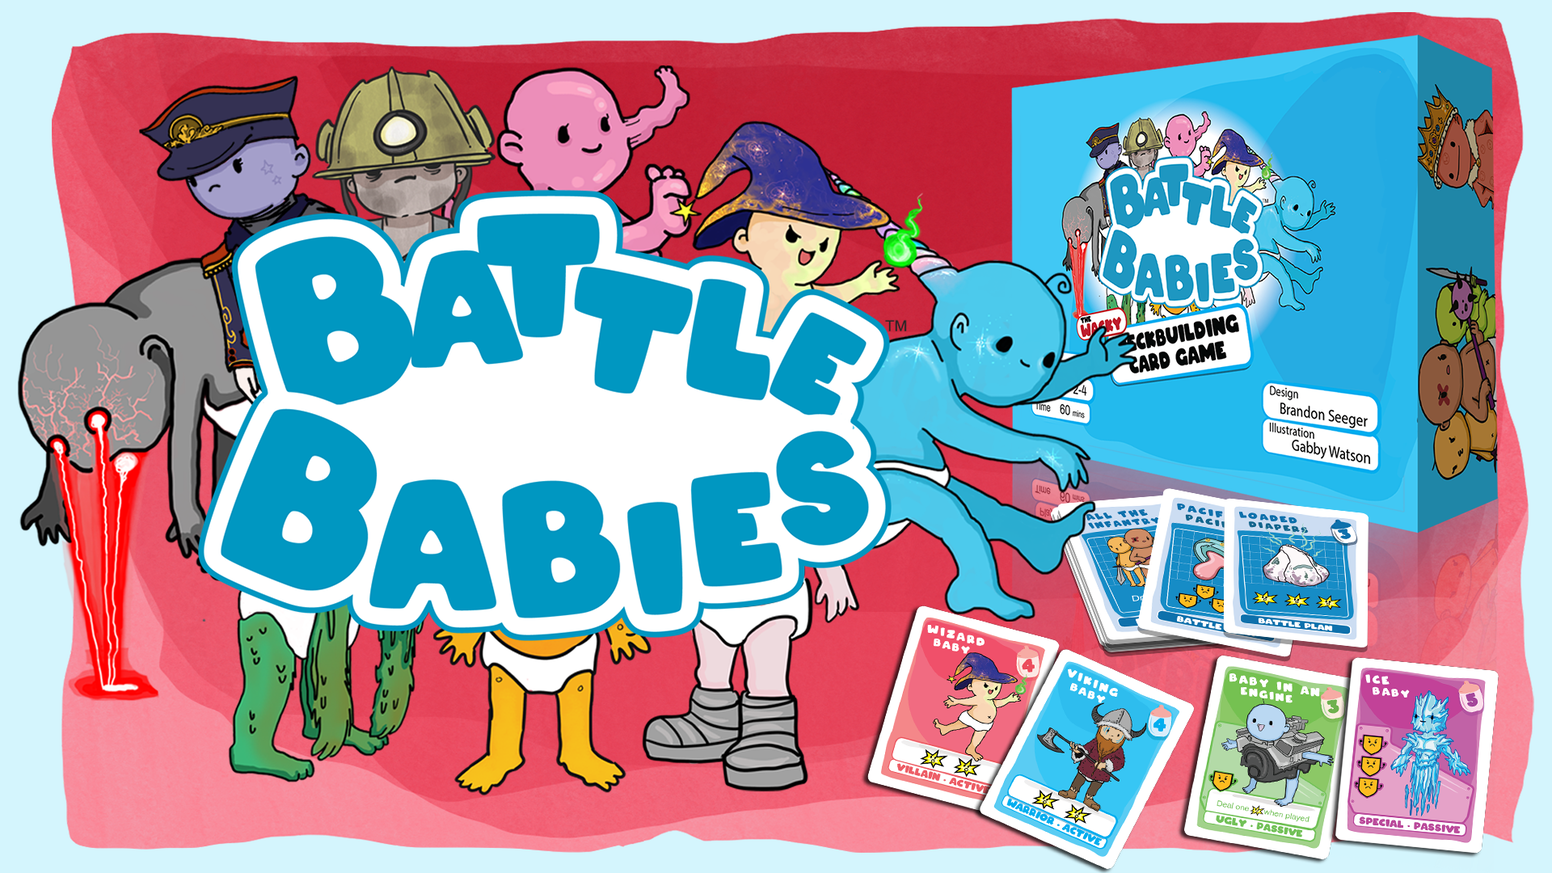 The wacky card game about recruiting an army, battling  your friends, and looking at cute babies.